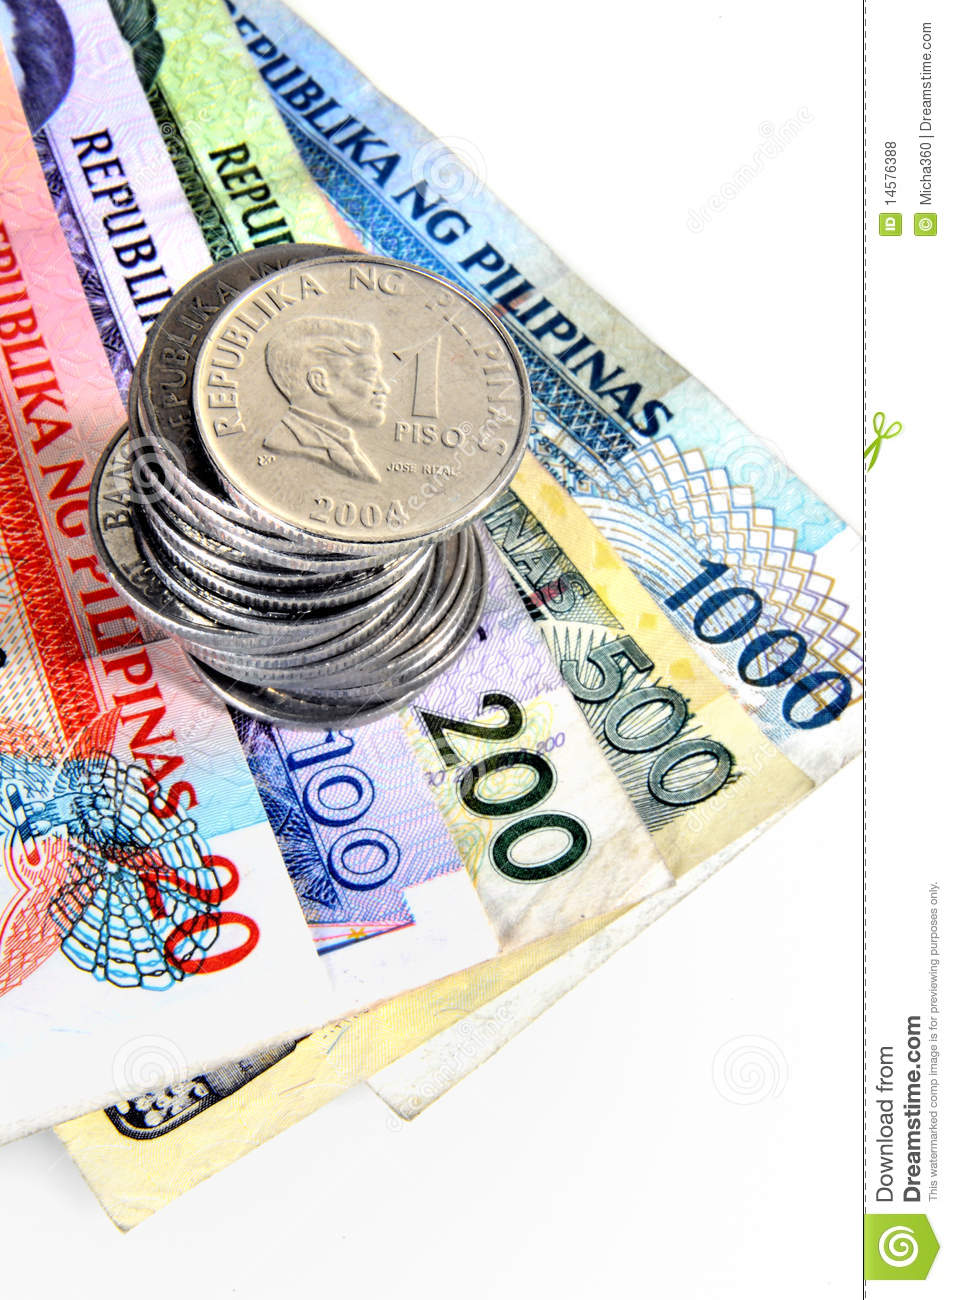 philippine money clipart 20 free Cliparts | Download ...